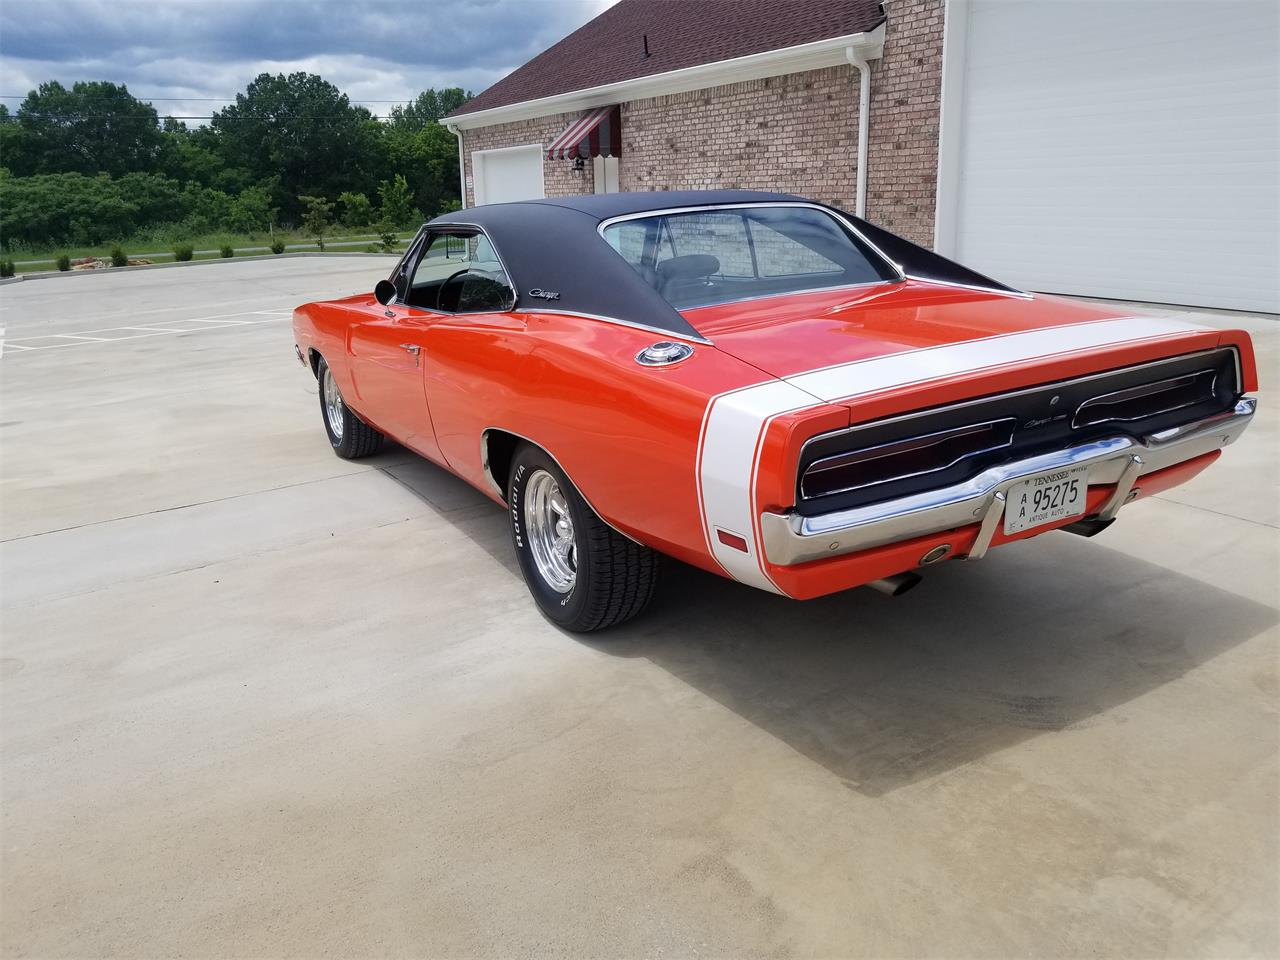 Large Picture of 1969 Dodge Charger located in Tennessee - $47,500.00 Offered by a Private Seller - Q45J